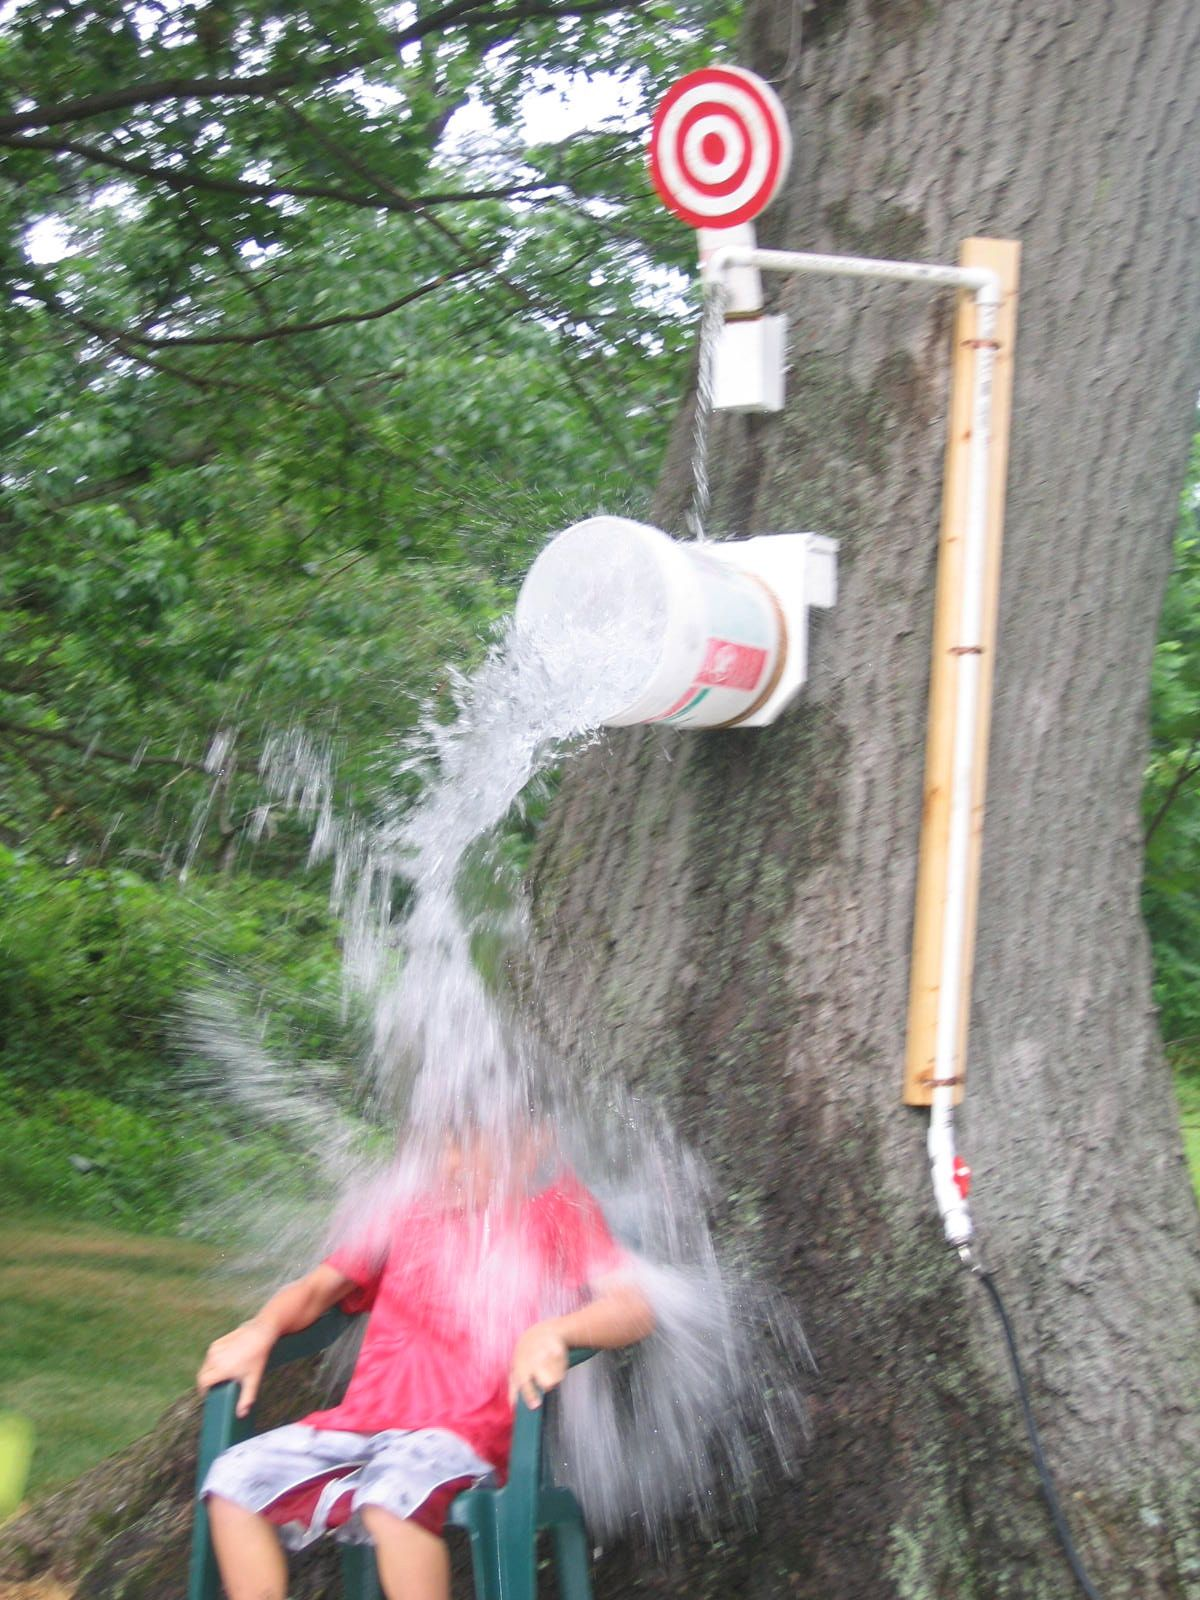 diy outdoor games fun projects buckets and yard games